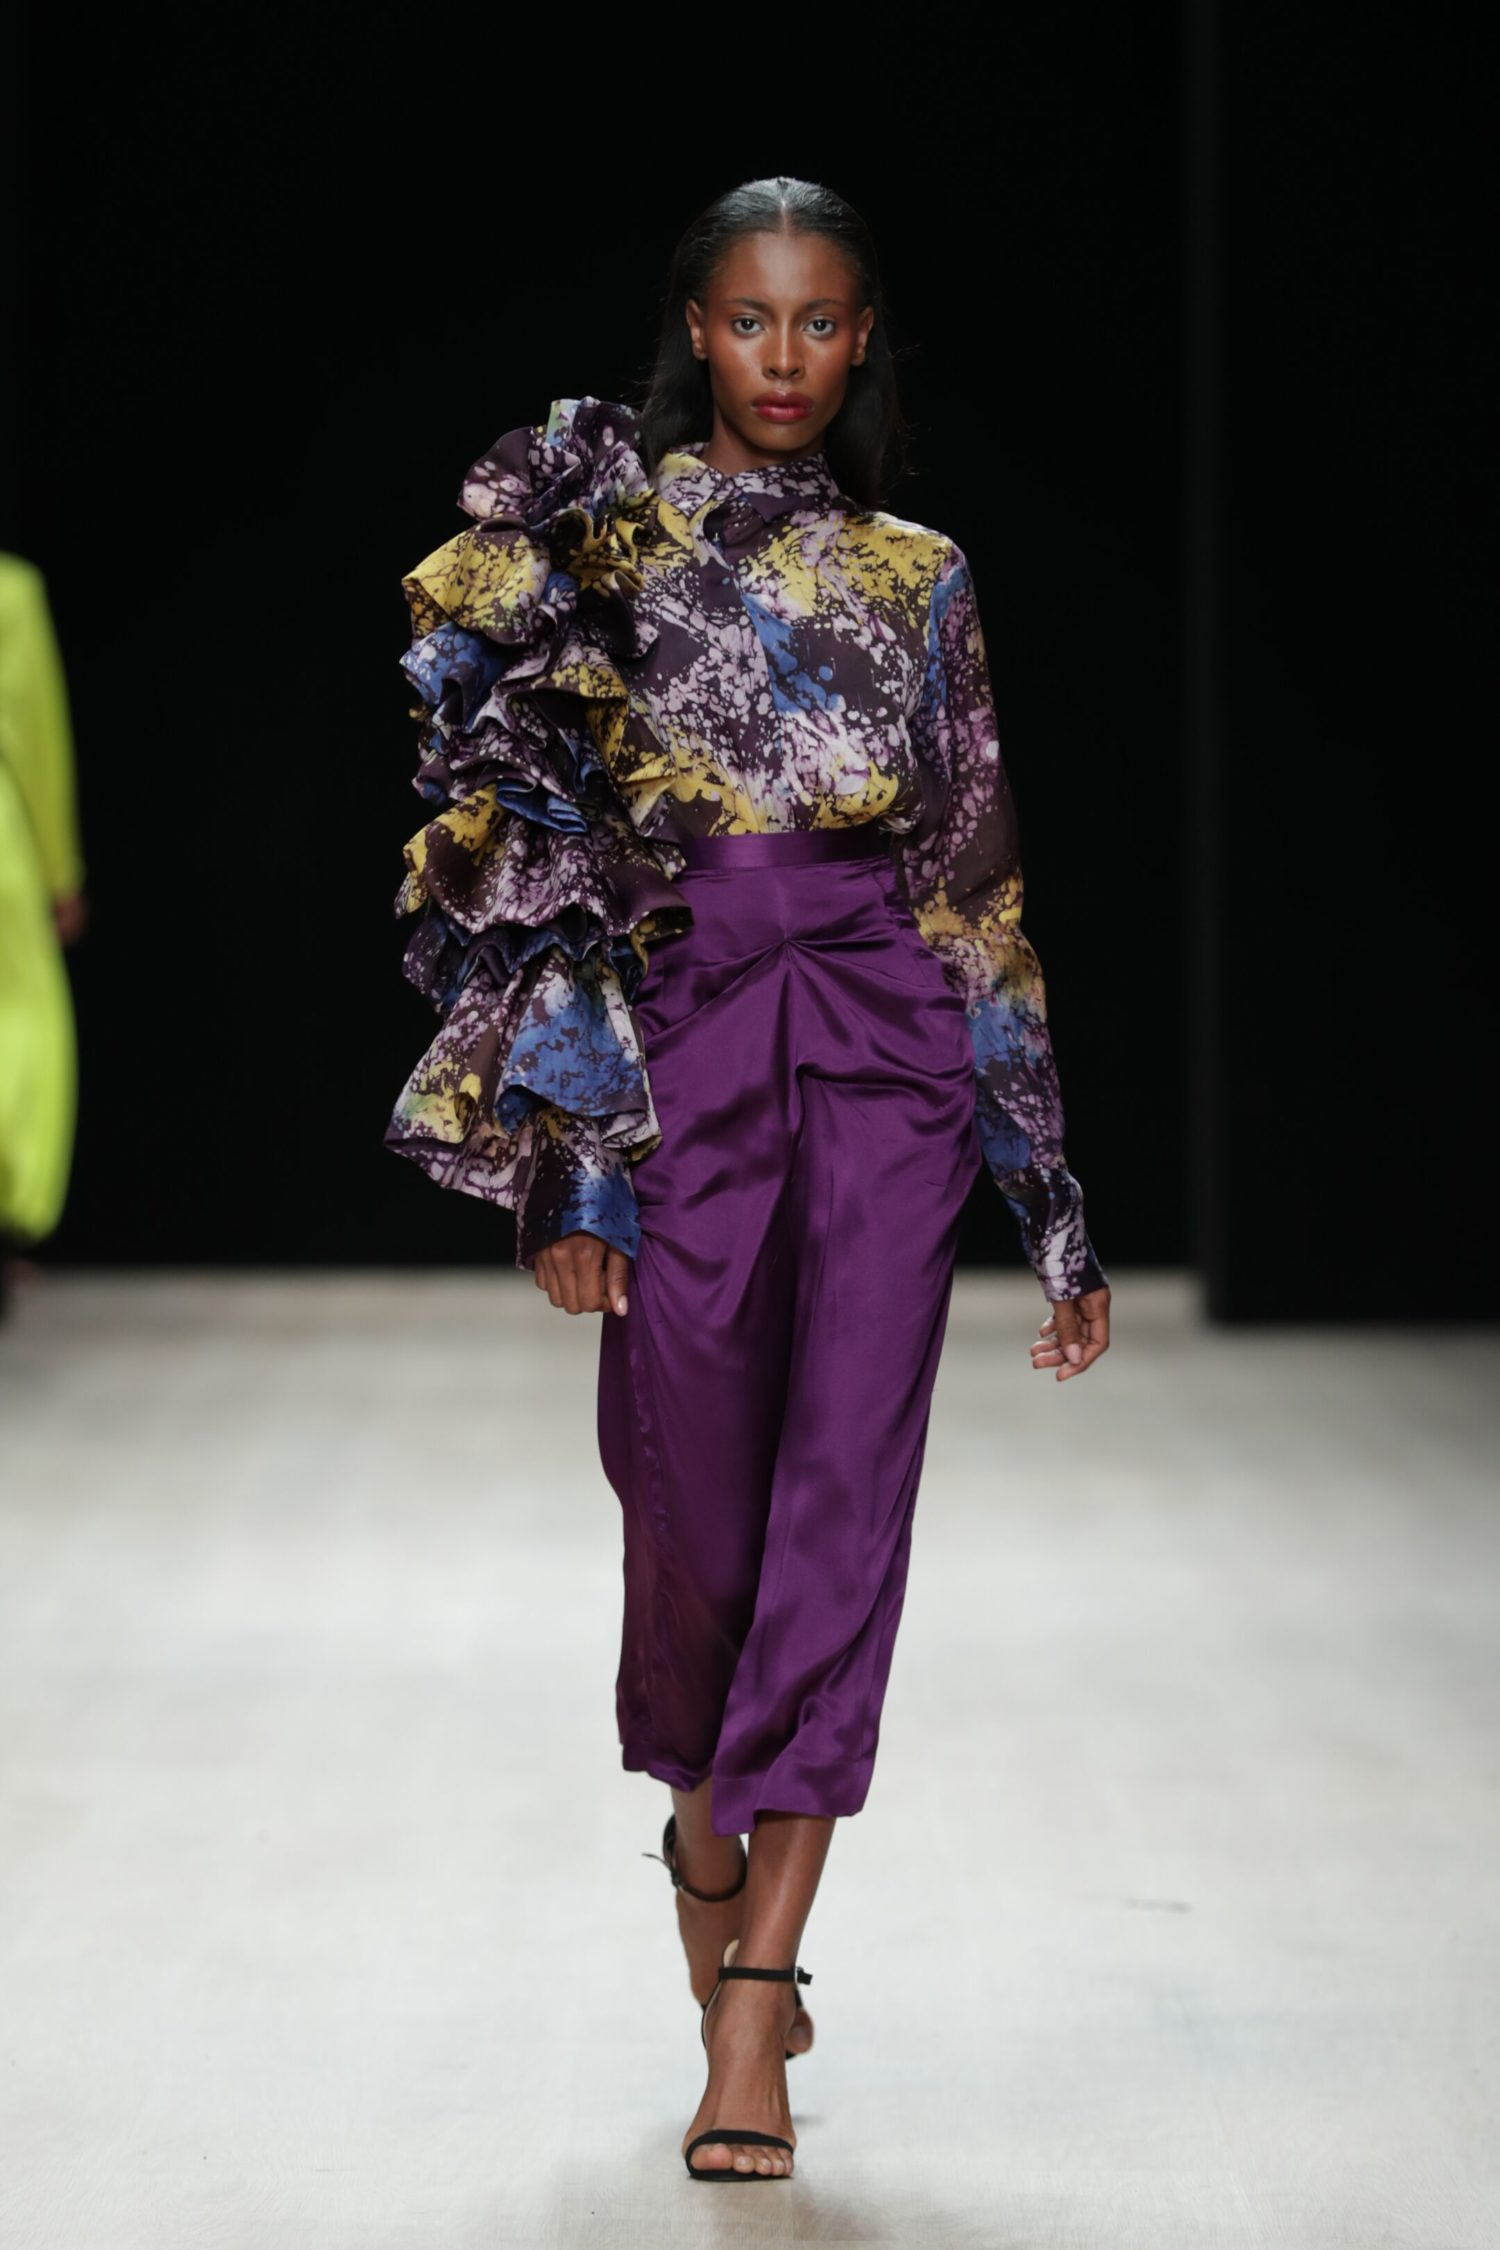 ARISE Fashion Week 2019 | Tiffany Amber